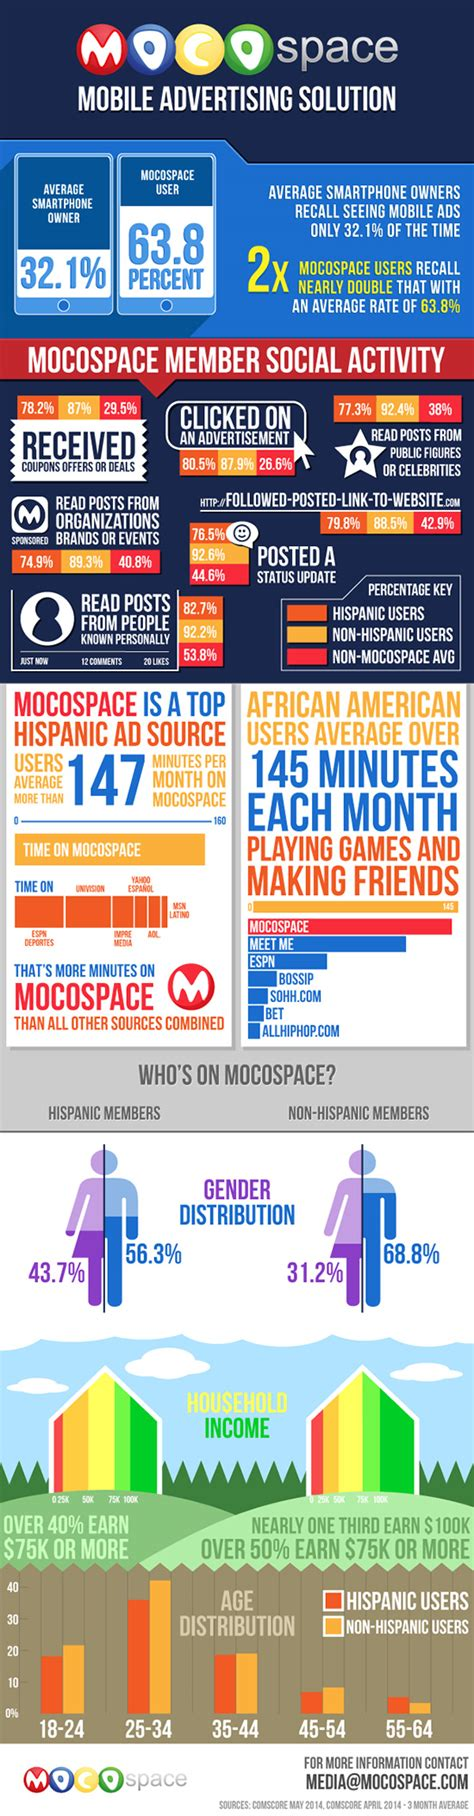 mocospace mobile advertising solution infographics race